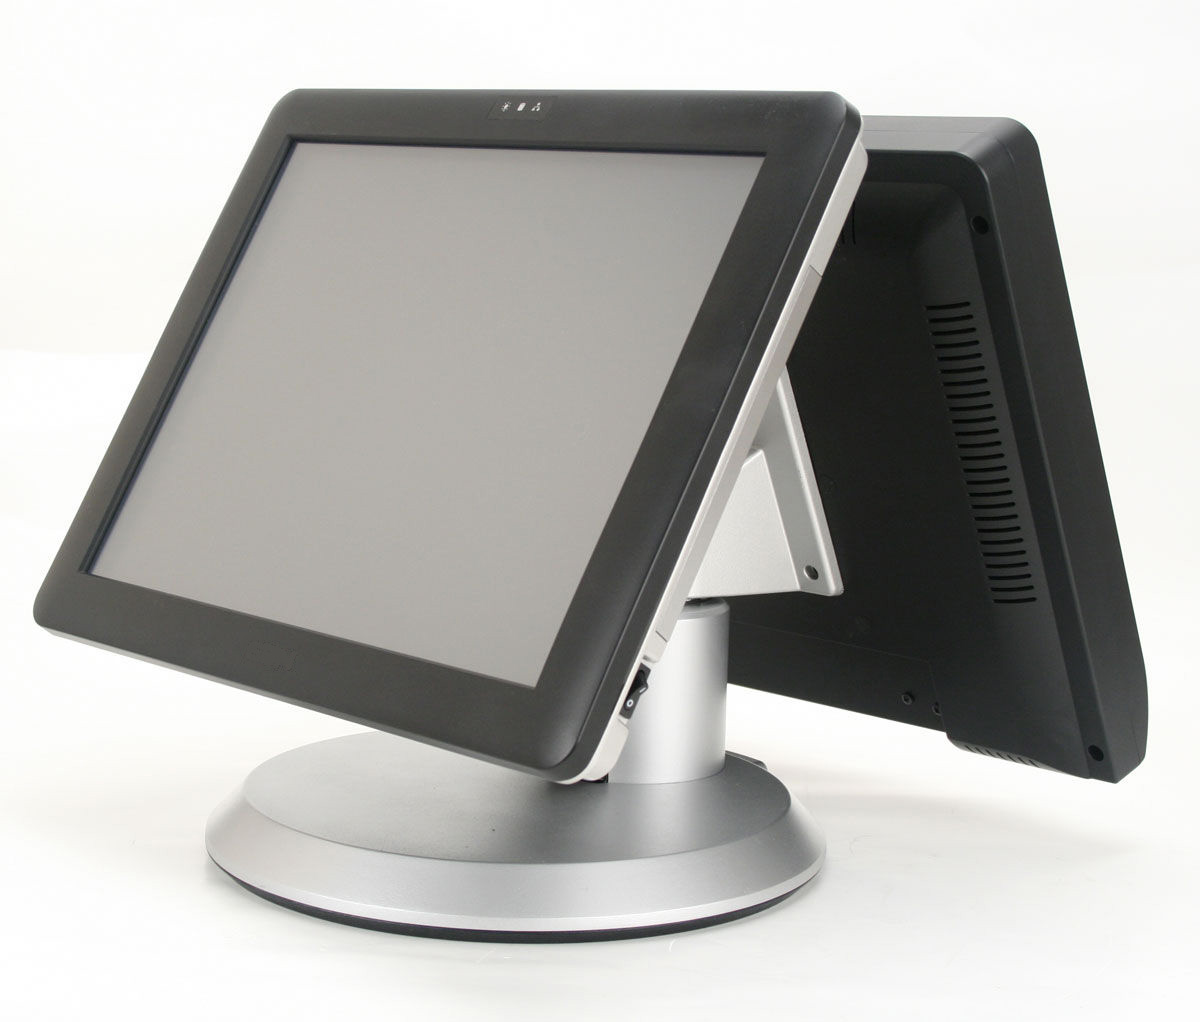 fanless-touch-screen-point-sale-computers-pos-40485-2285993